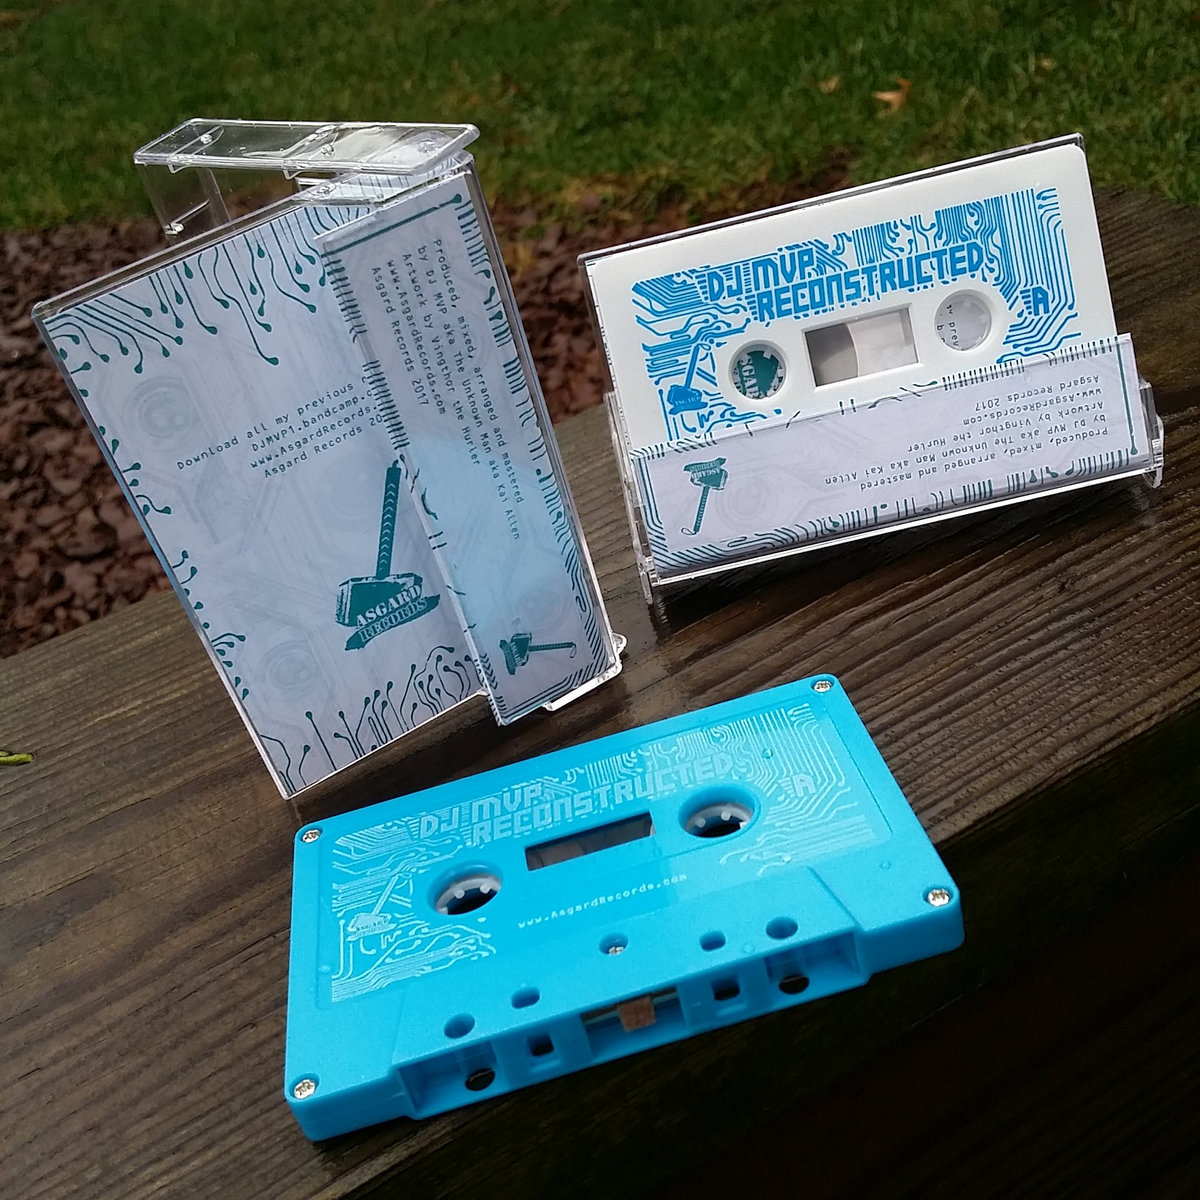 Dr octagon blue flowers asgard records color 3 panel j card printed both sides and clear norelco boxes cassette shells comes in 2 different colors 50 light blue shells with white imprint izmirmasajfo